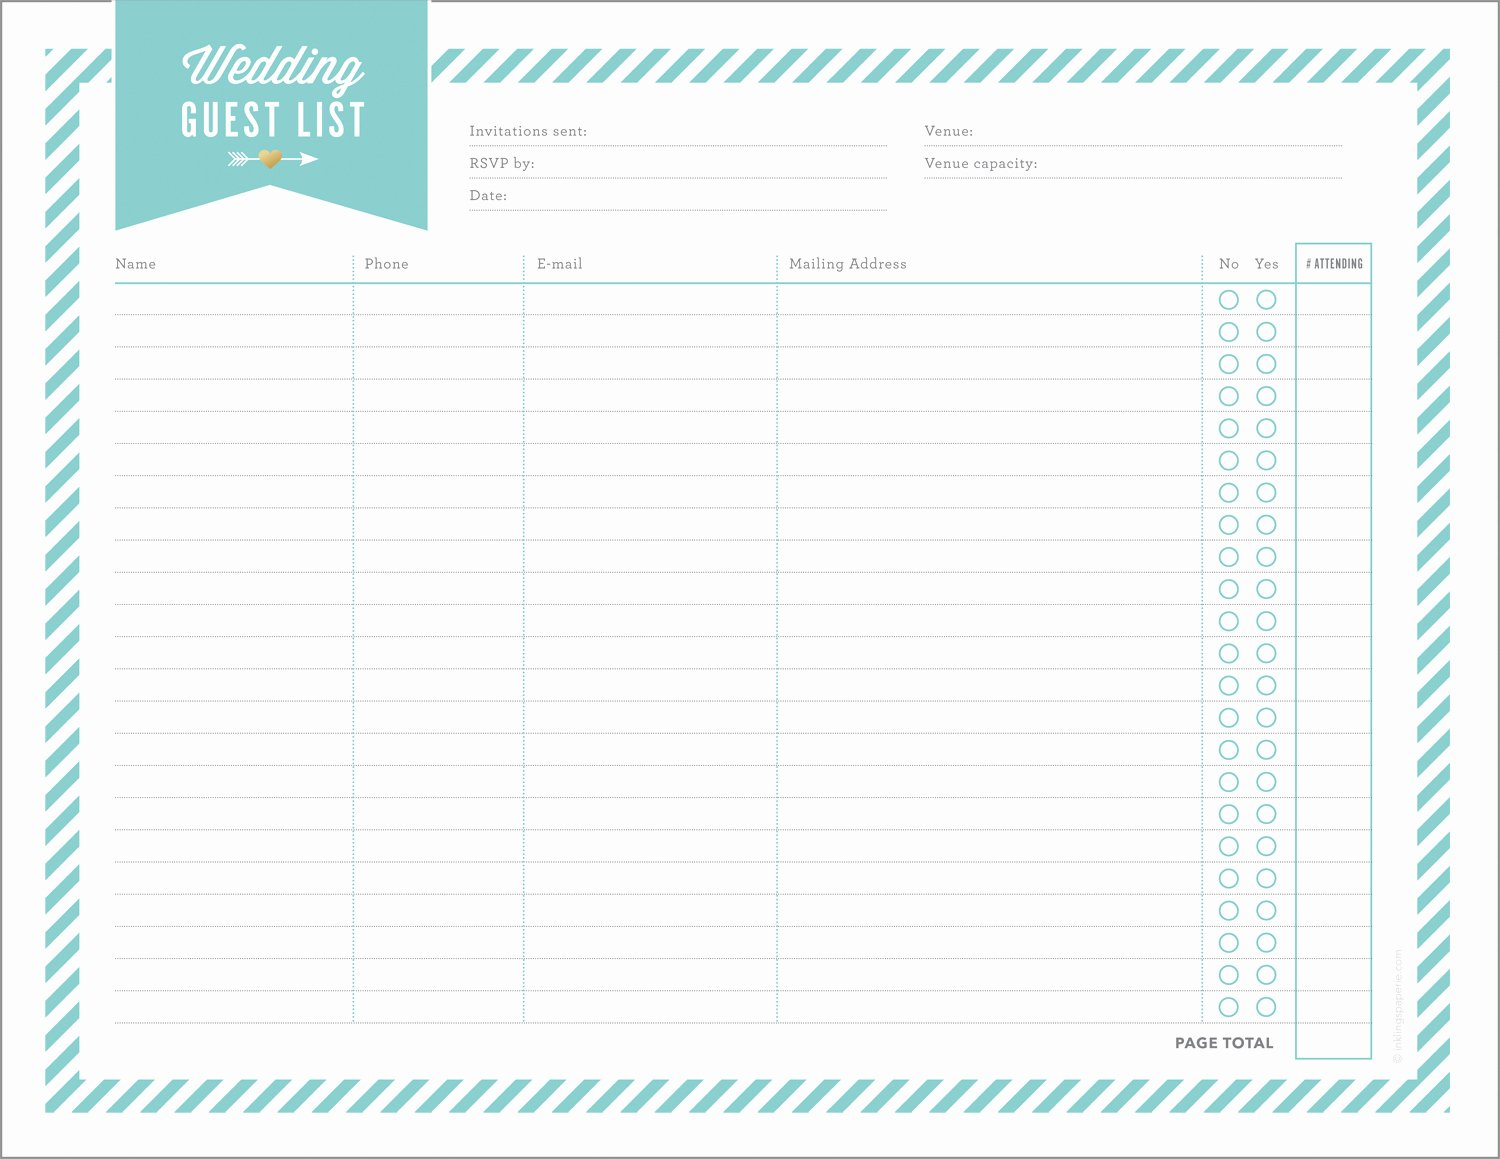 Wedding Guest List Template Printable Inspirational Free Wedding Planning Printables & Checklists